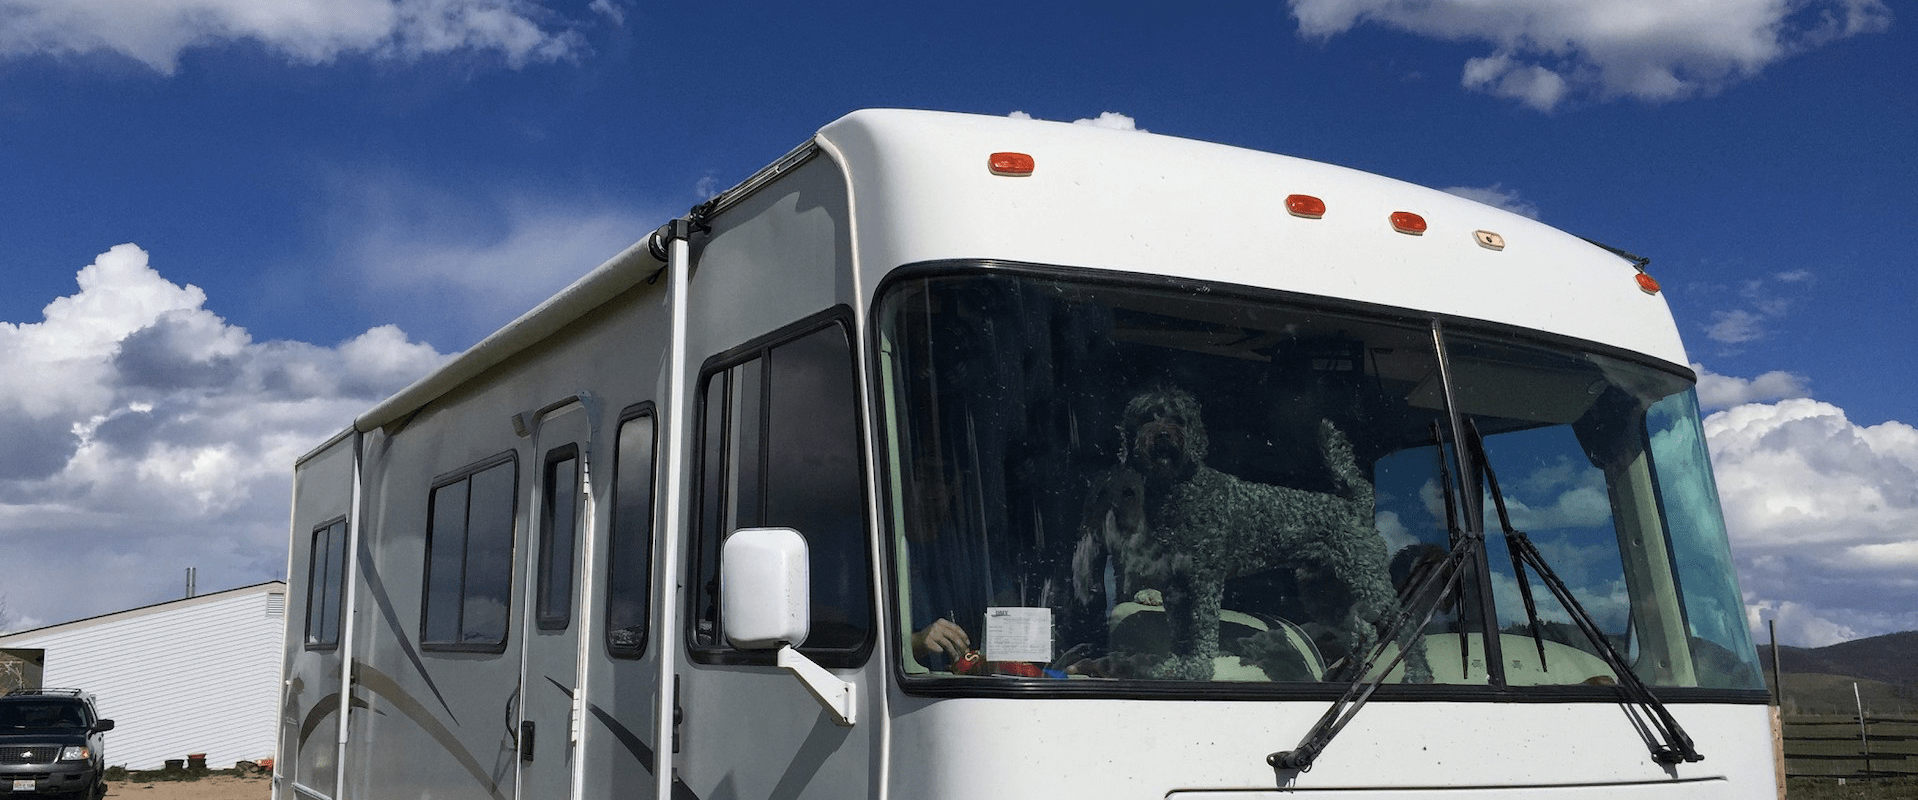 On the Road: RV'ing with your Pet